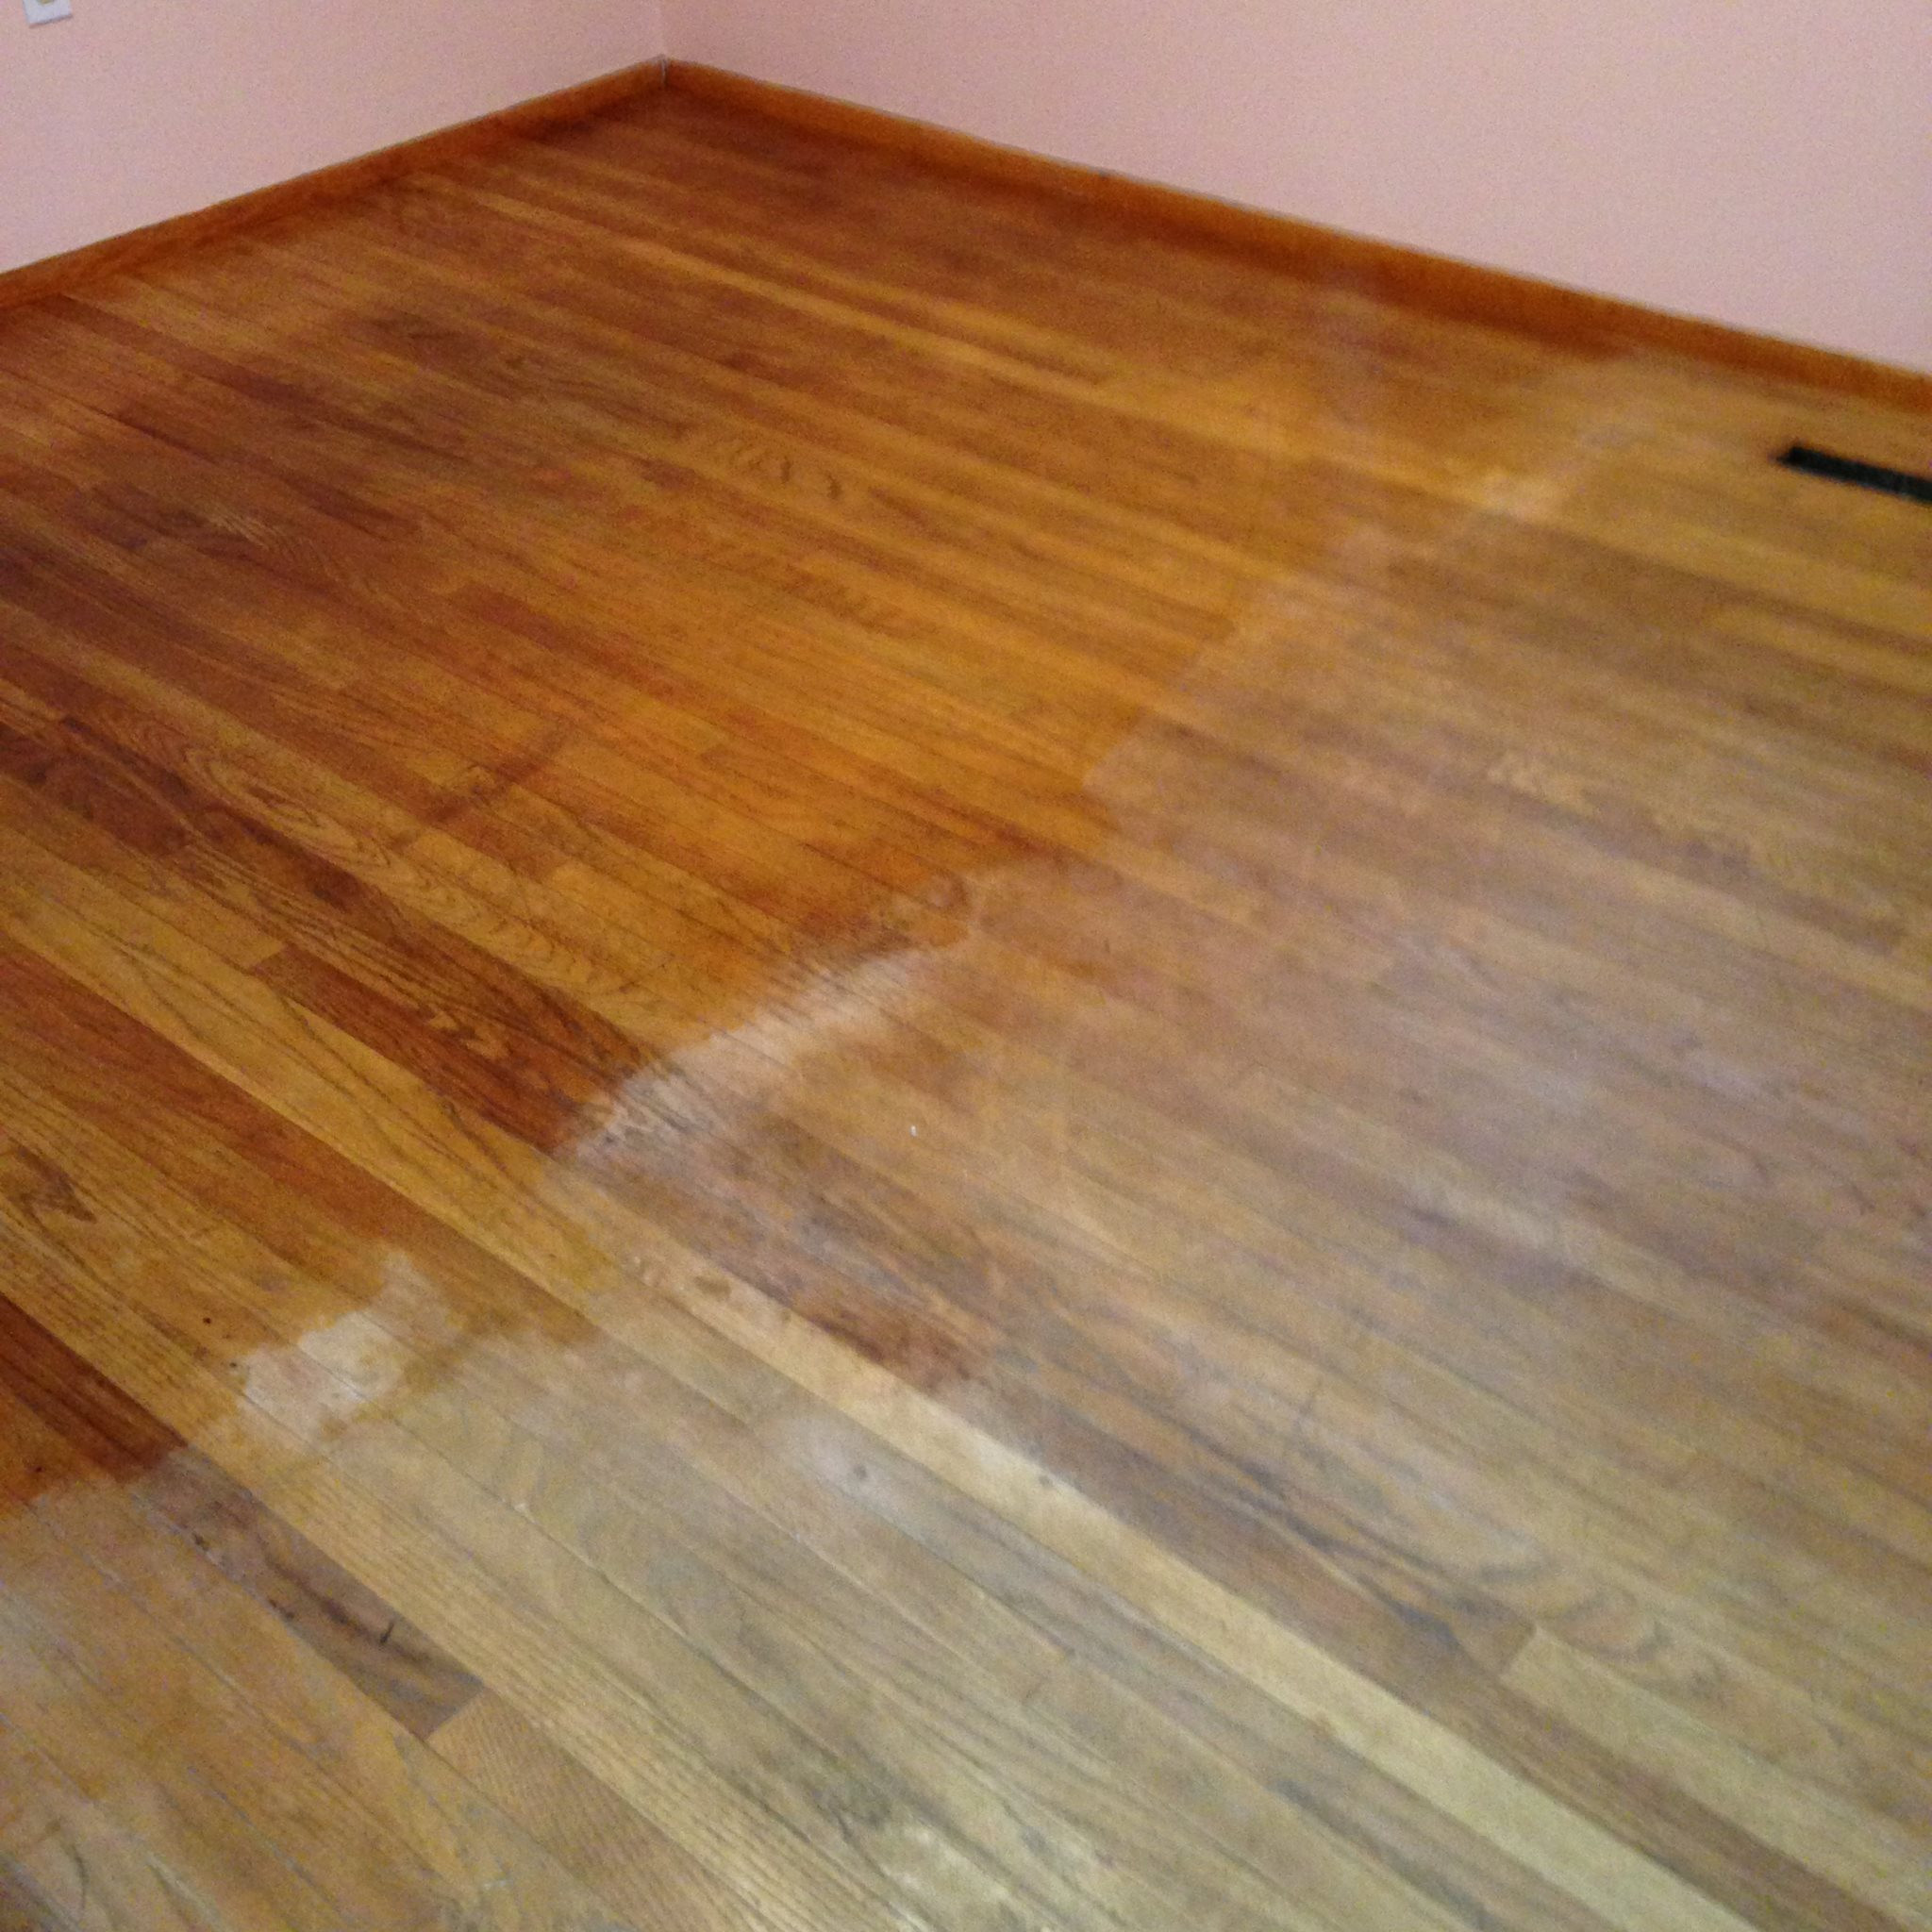 hardwood floor cleaning products of 15 wood floor hacks every homeowner needs to know within wood floor hacks 15